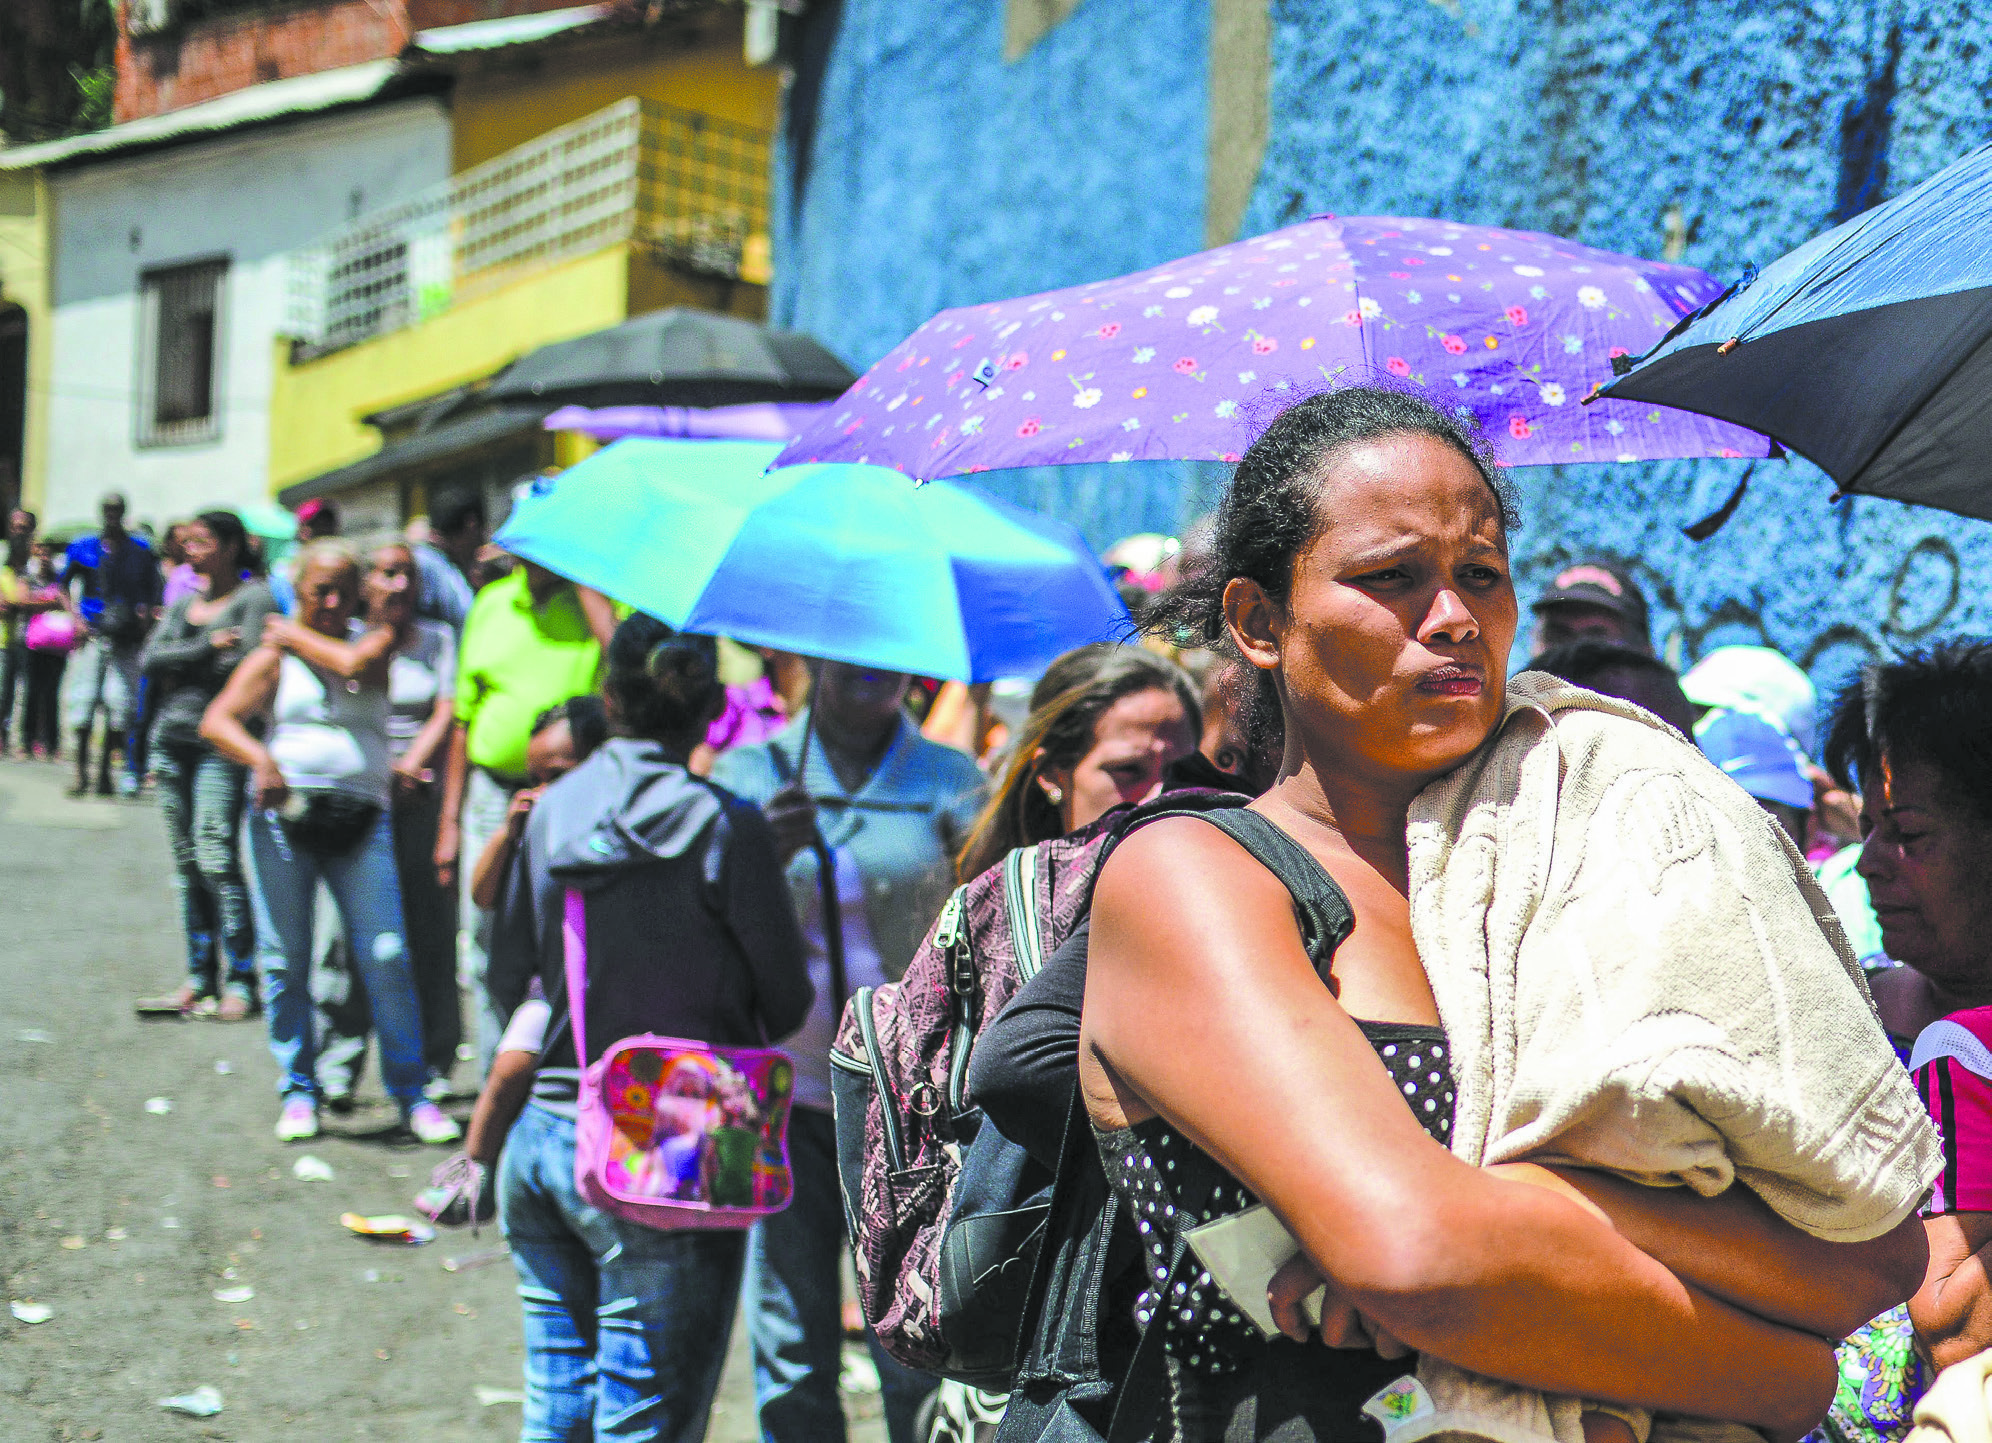 People line up to buy basic food and household items outside a supermarket in Caracas, Venezuela, in 2016. (RONALDO SCHEMIDT/AFP/GETTY IMAGES)